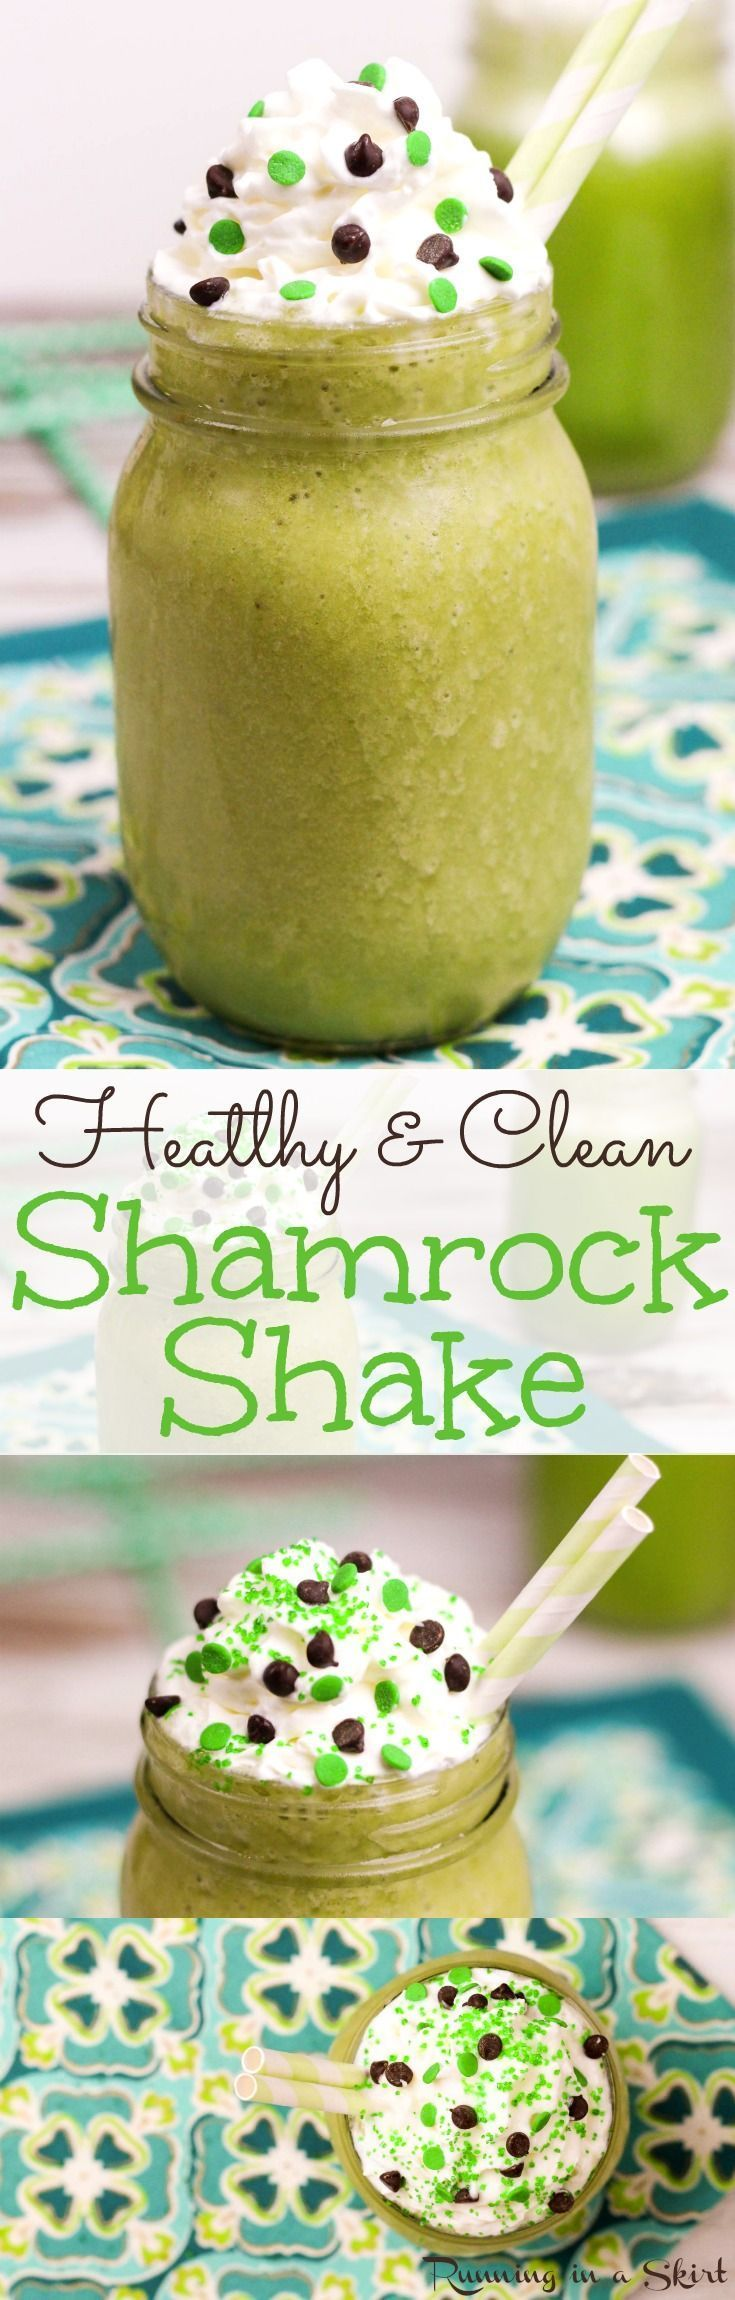 4 Ingredient Healthy Shamrock Shake recipe for St. Patrick's Day! A skinny and clean eating version of McDonald's green smoothie.  Vegetarian and vegan friendly with almond milk and no food coloring - uses spinach instead!  Tastes so good -- you'll  never believe it's good for you! / Running in a Skirt